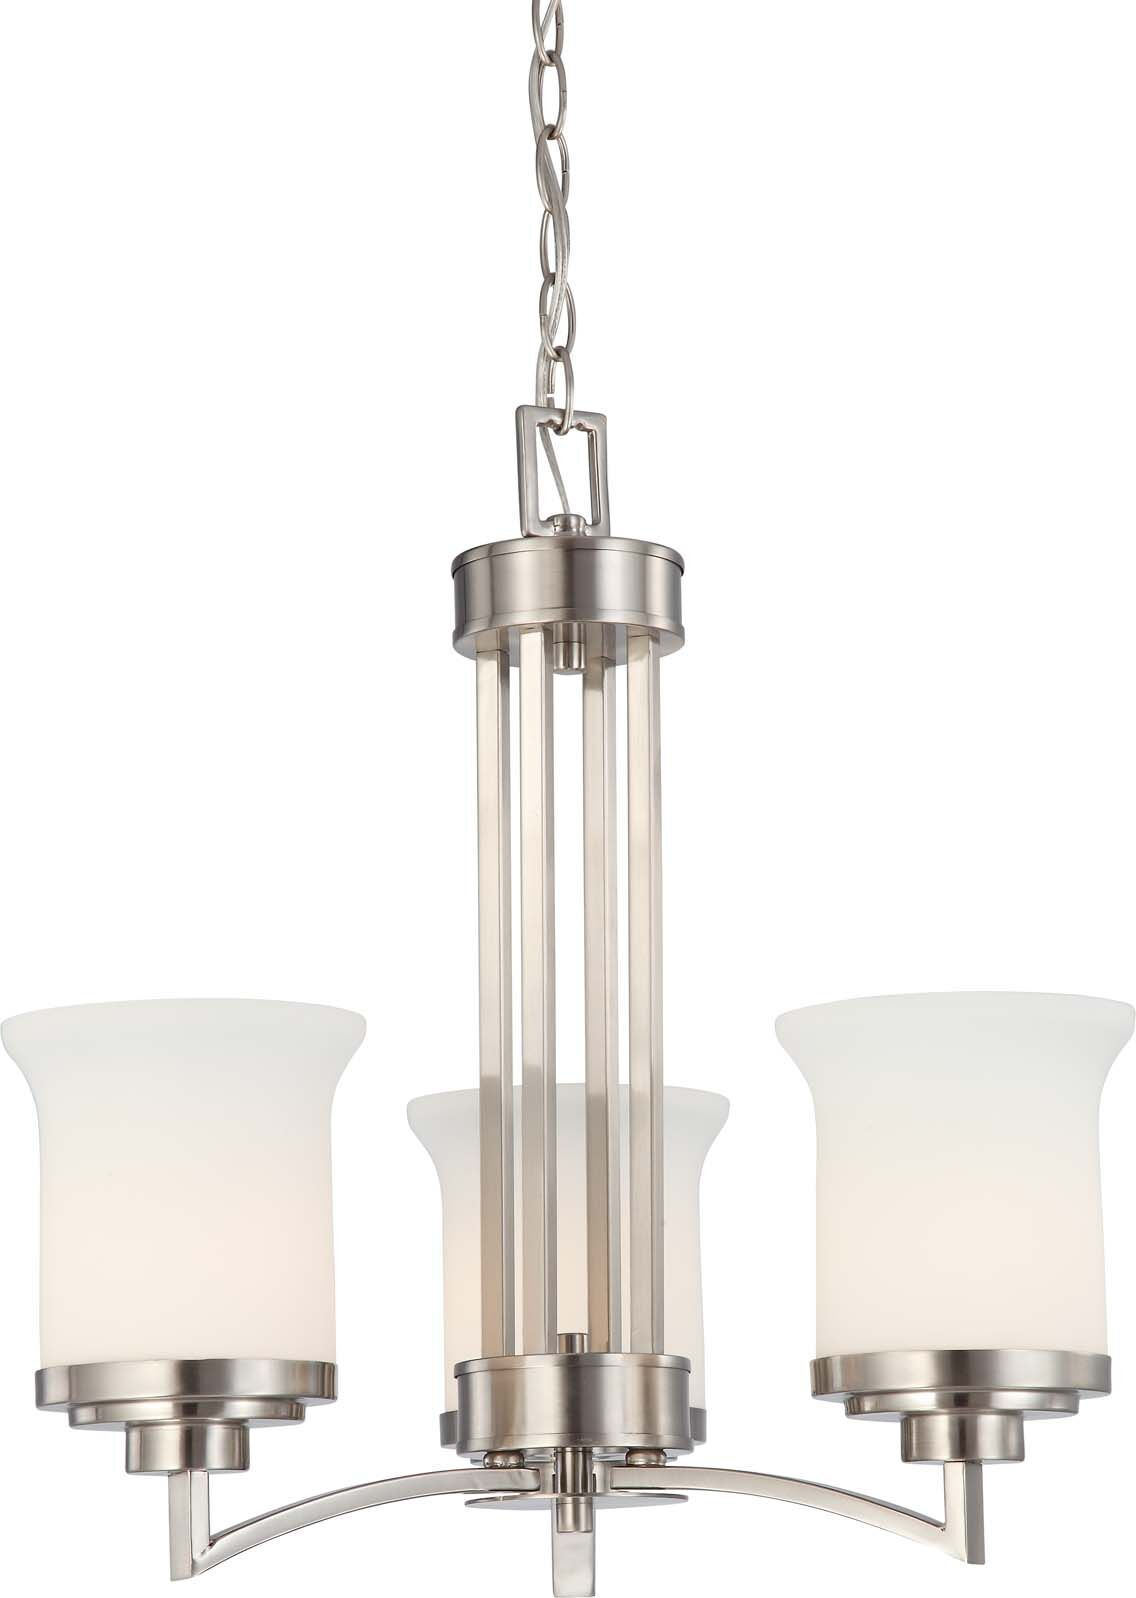 Craddock 3-Light Shaded Chandelier Finish / Shade Type: Brushed Nickel / Satin White